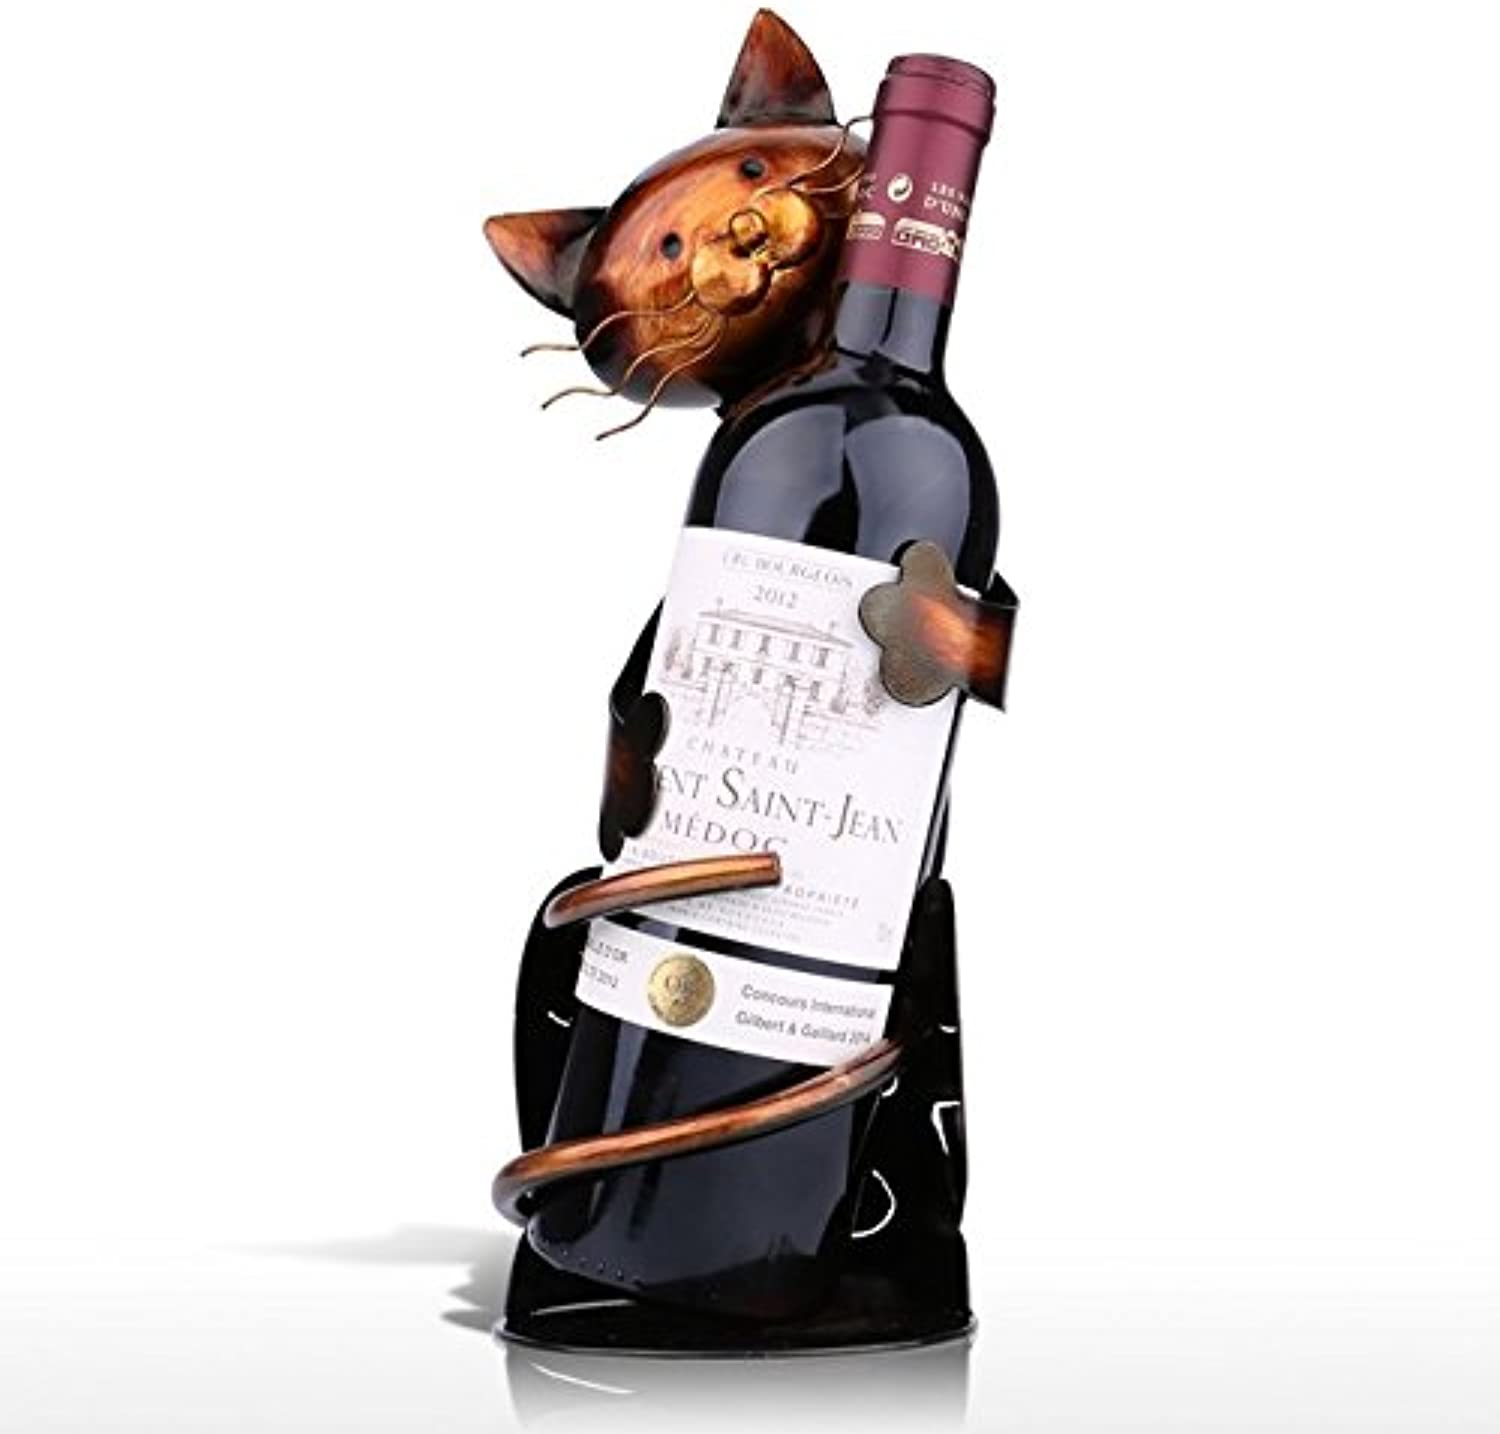 TOOARTS Brown Cat Shaped Wine Holder Delicate Wine Shelf Metal Sculpture Practical Sculpture Home Bar Decoration Interior Crafts   as Picture